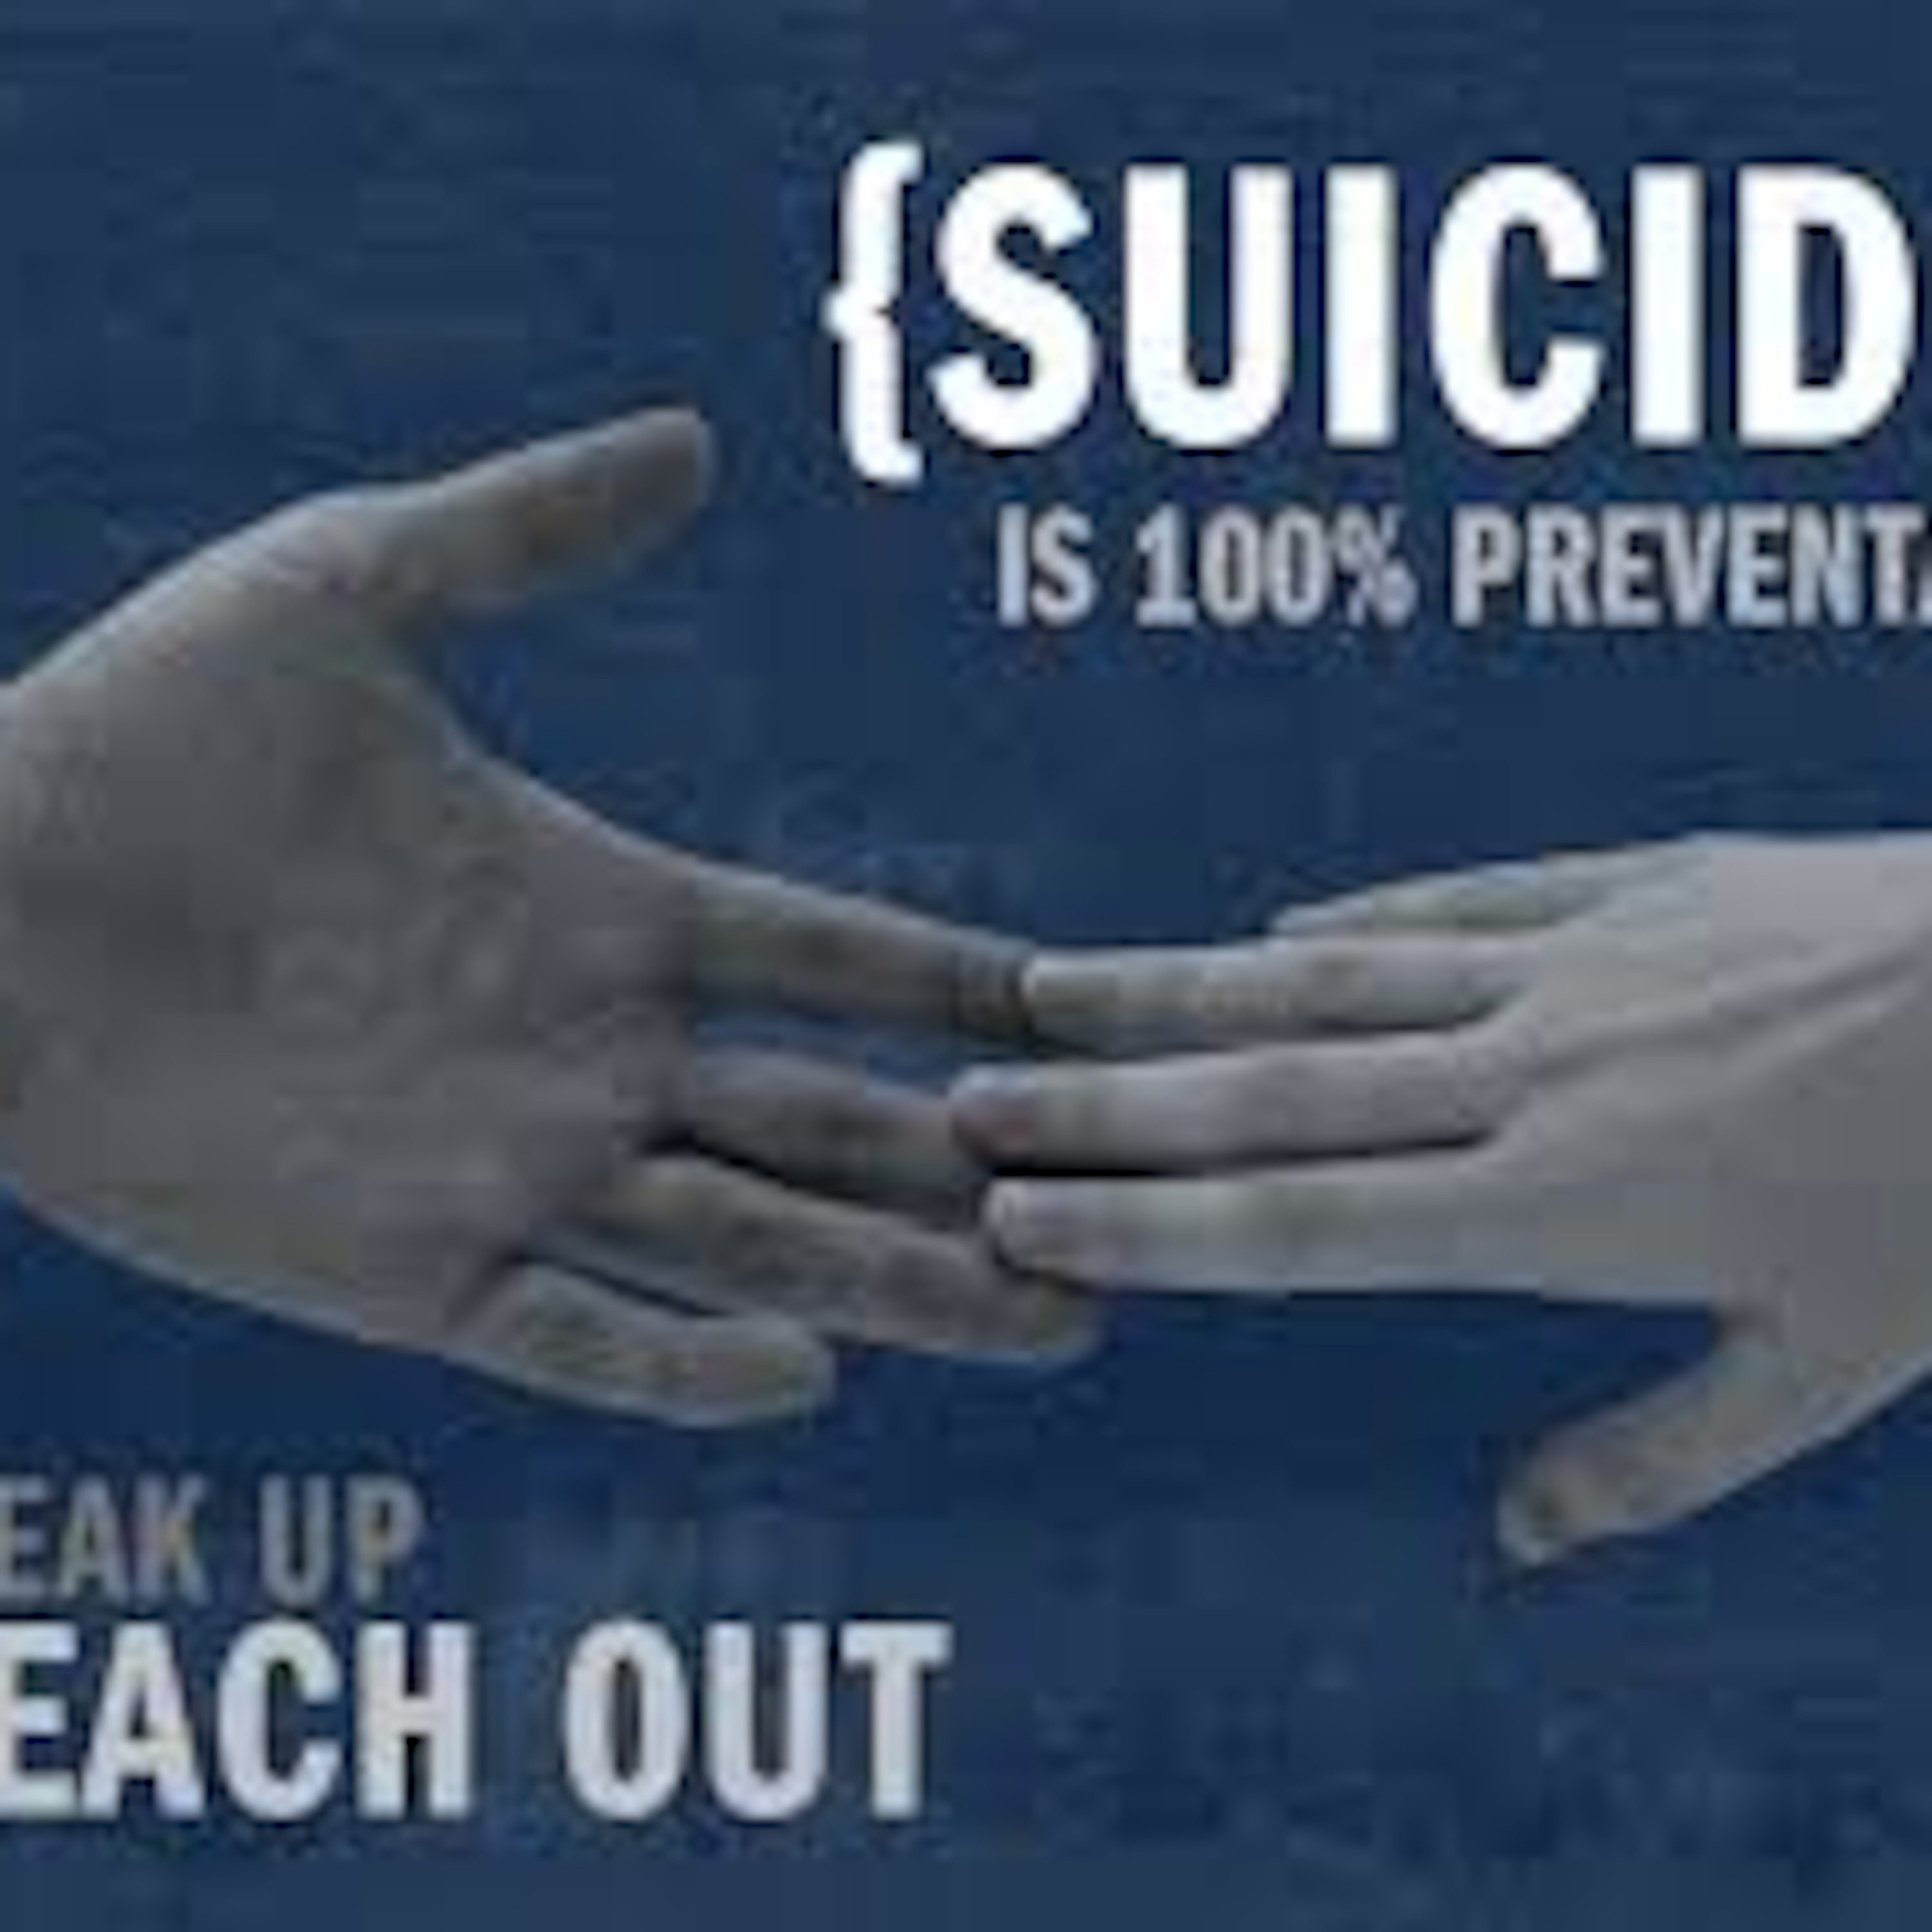 Episode 156 The pain inside, Suicide Awareness & Prevention